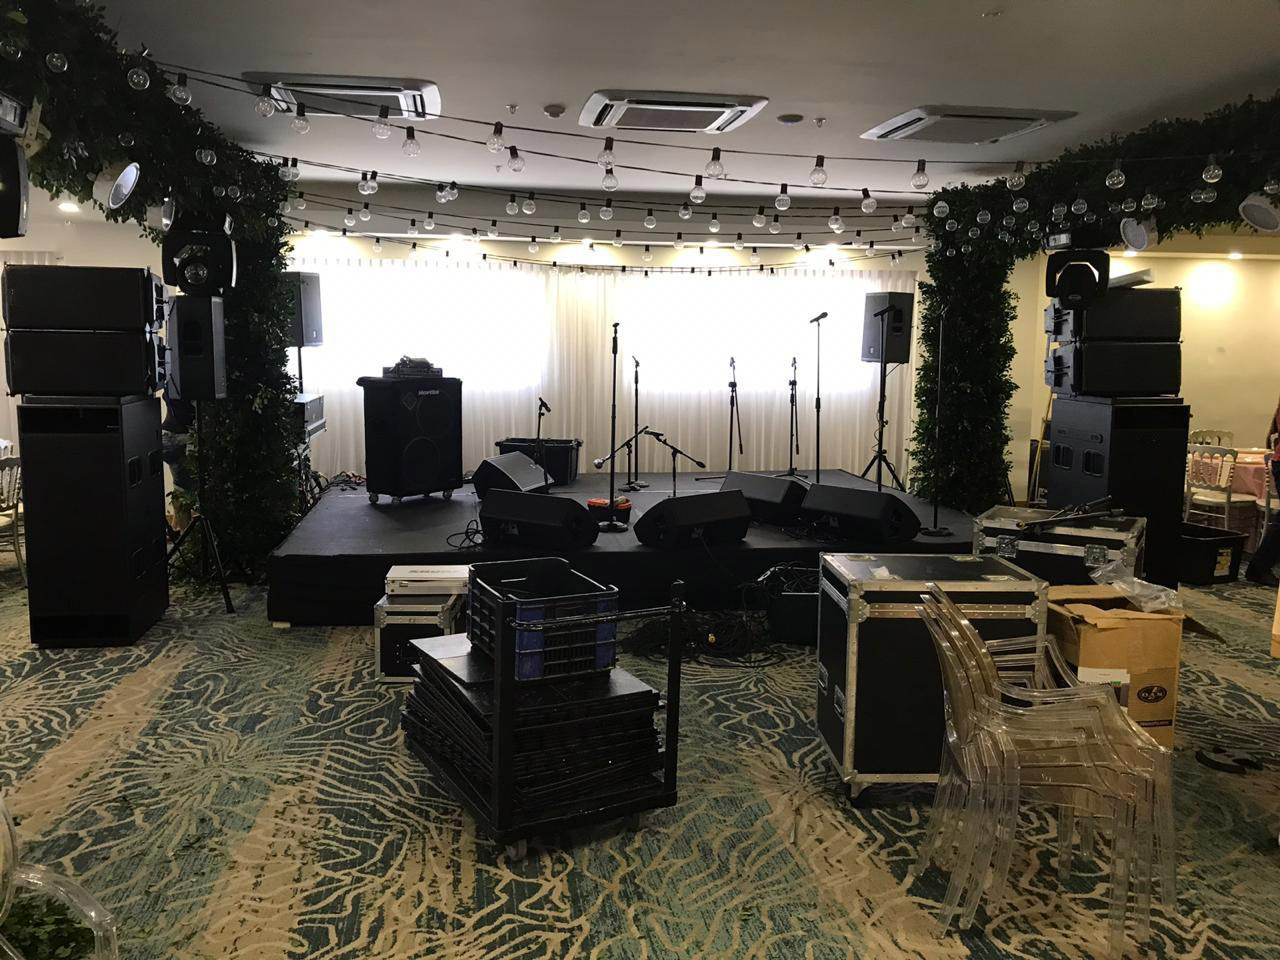 Sanway GEO S1210 Line Array and RS18 Subwoofer Supplied the 500 People Event